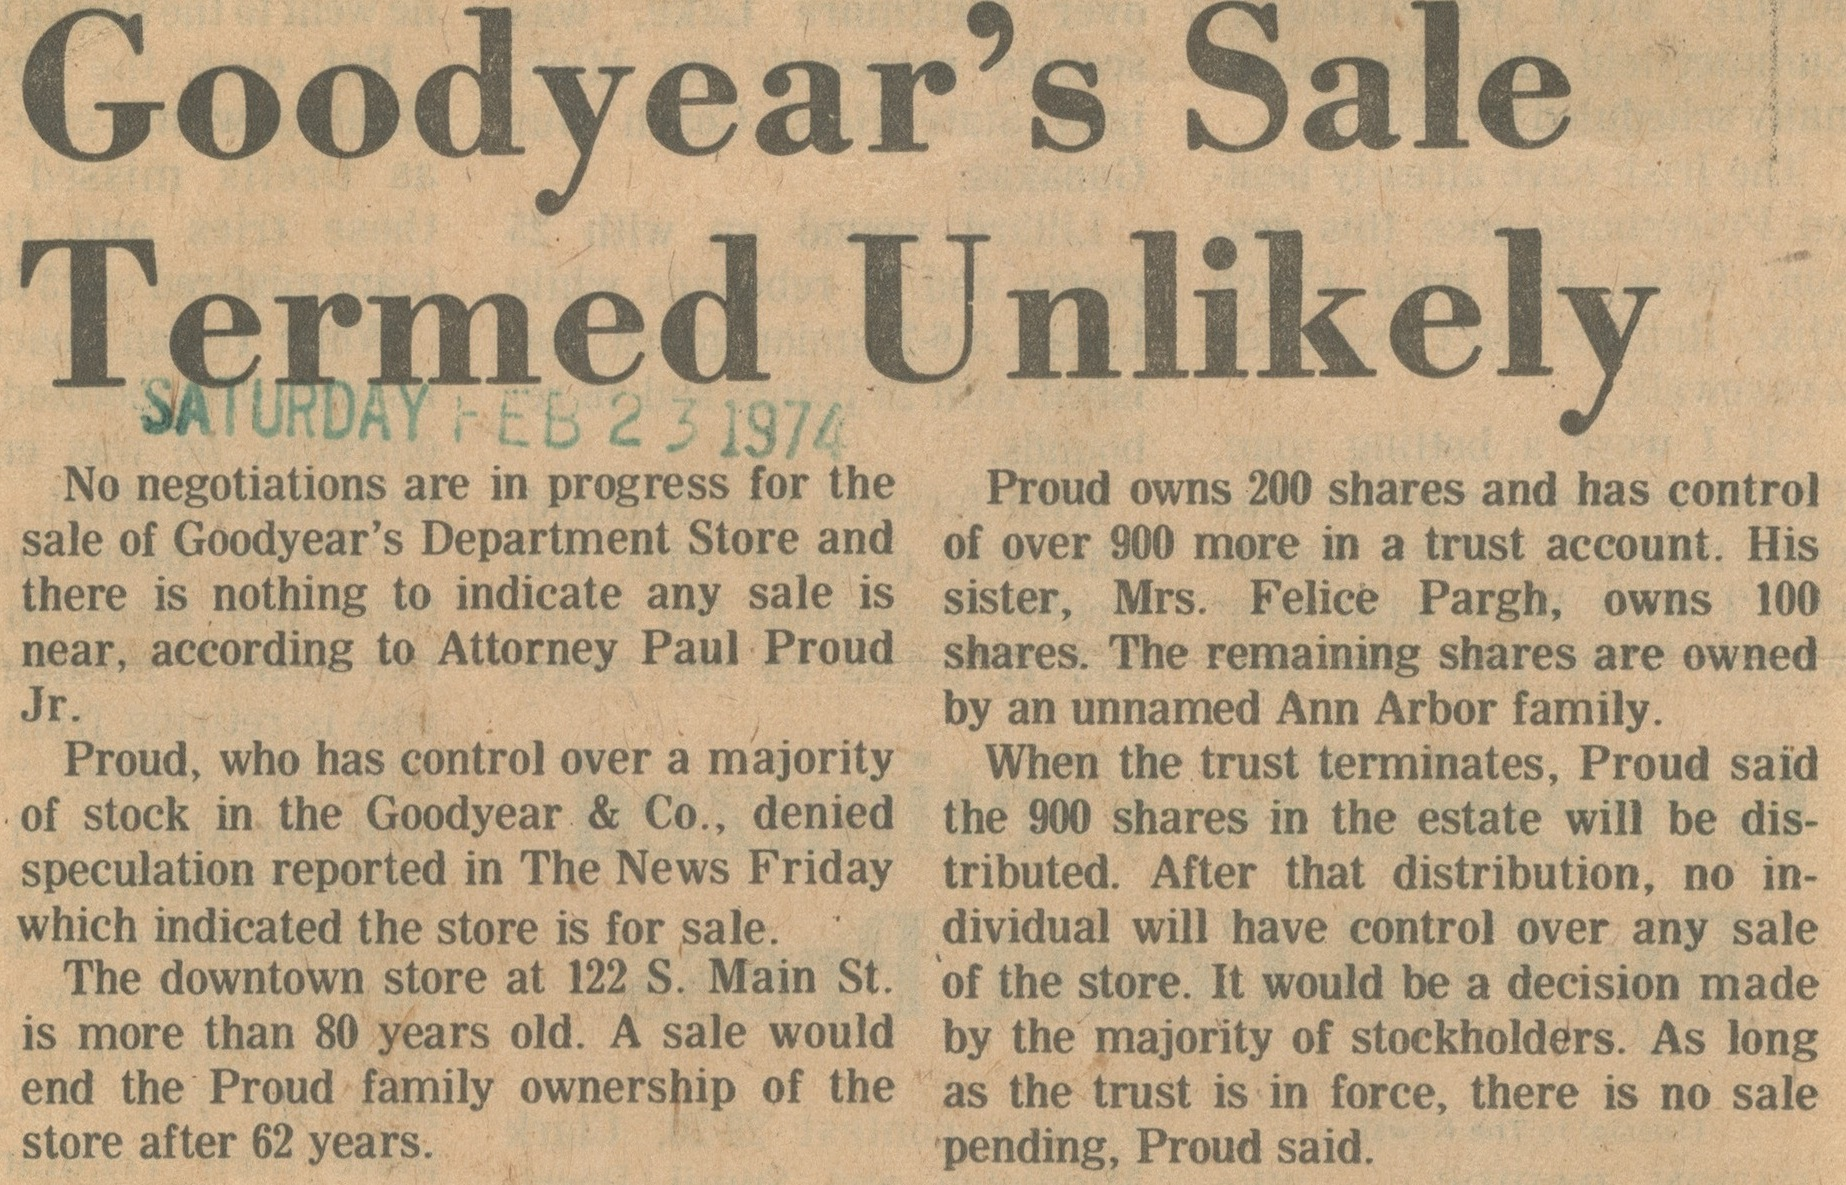 Goodyear's Sale Termed Unlikely image